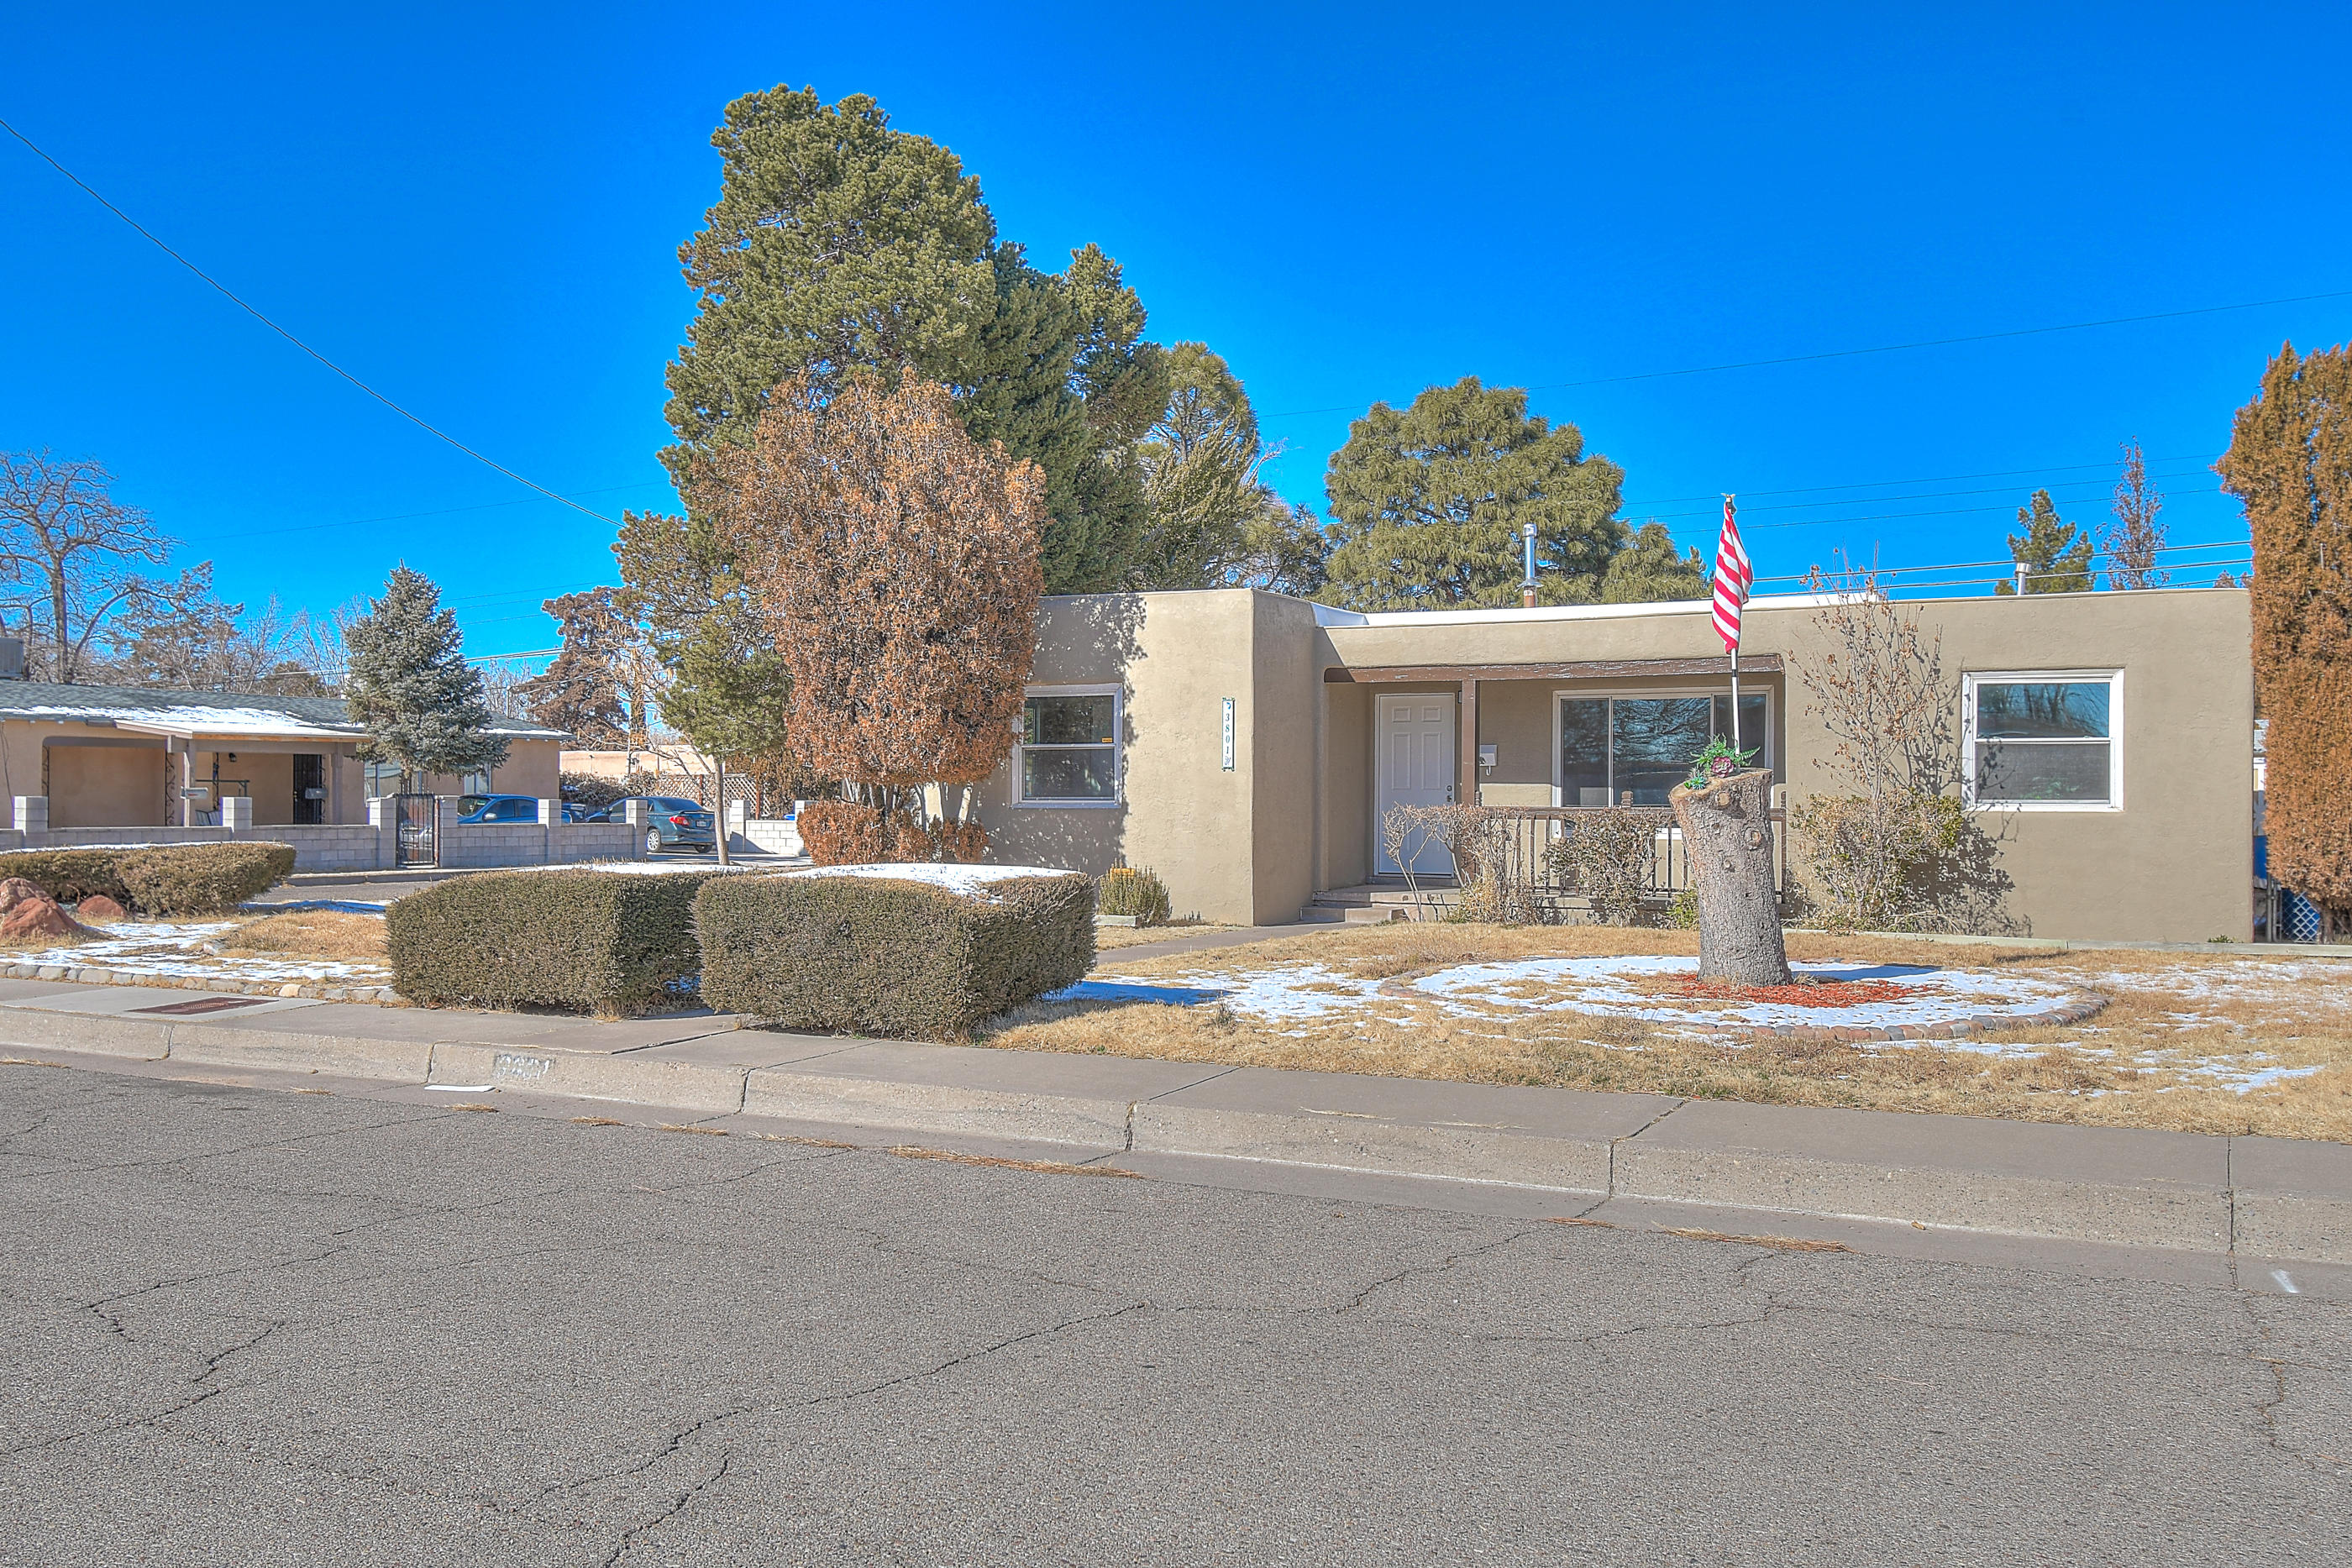 Newly remodeled home located in the highly sought after Ridgecrest area!! This 2134 square foot home boasts 4 bedrooms and 2 bathrooms. The kitchen opens to the large size living area.  Beeautiful quartz countertops, and stainless steel appliance package, custom cabinets, upgrades also include new windows, doors, stucco, paint, bathroom Fixture, refinished hardwood floors, new electrical panel and so much more!  Come and see this move In ready ridgecrest show stopper today!